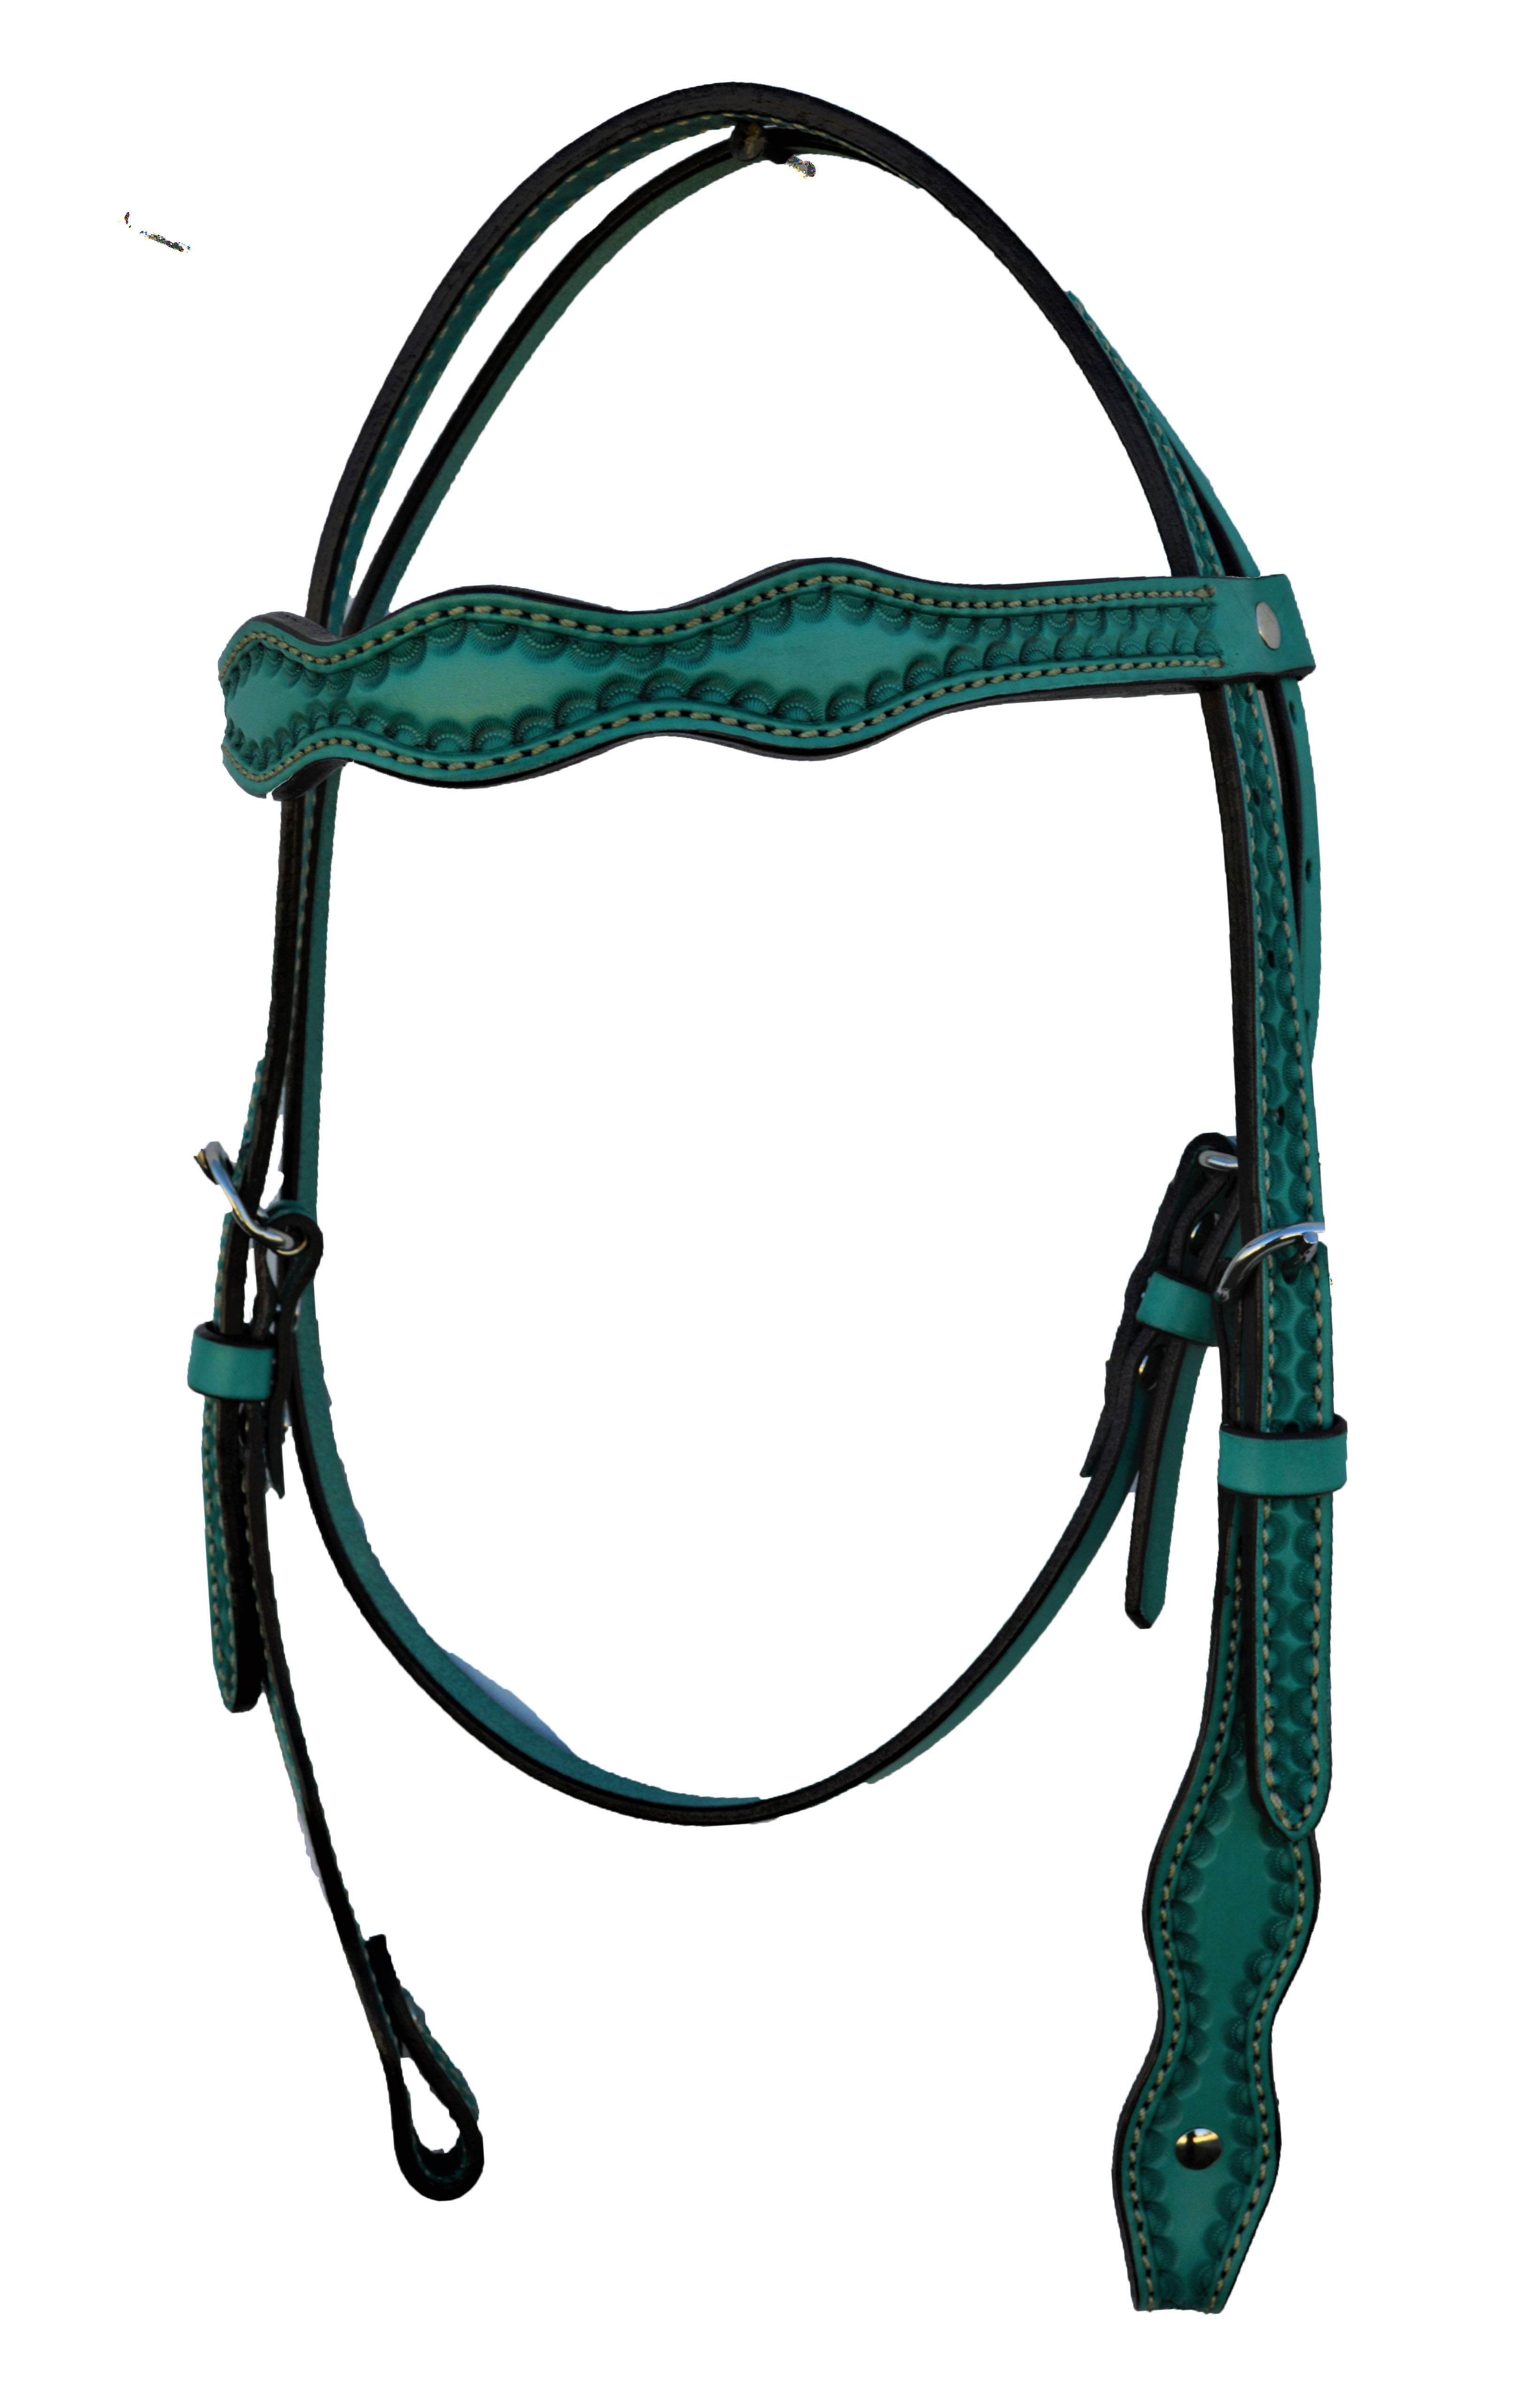 2037-Q Scalloped Headstall with Turquoise Leather